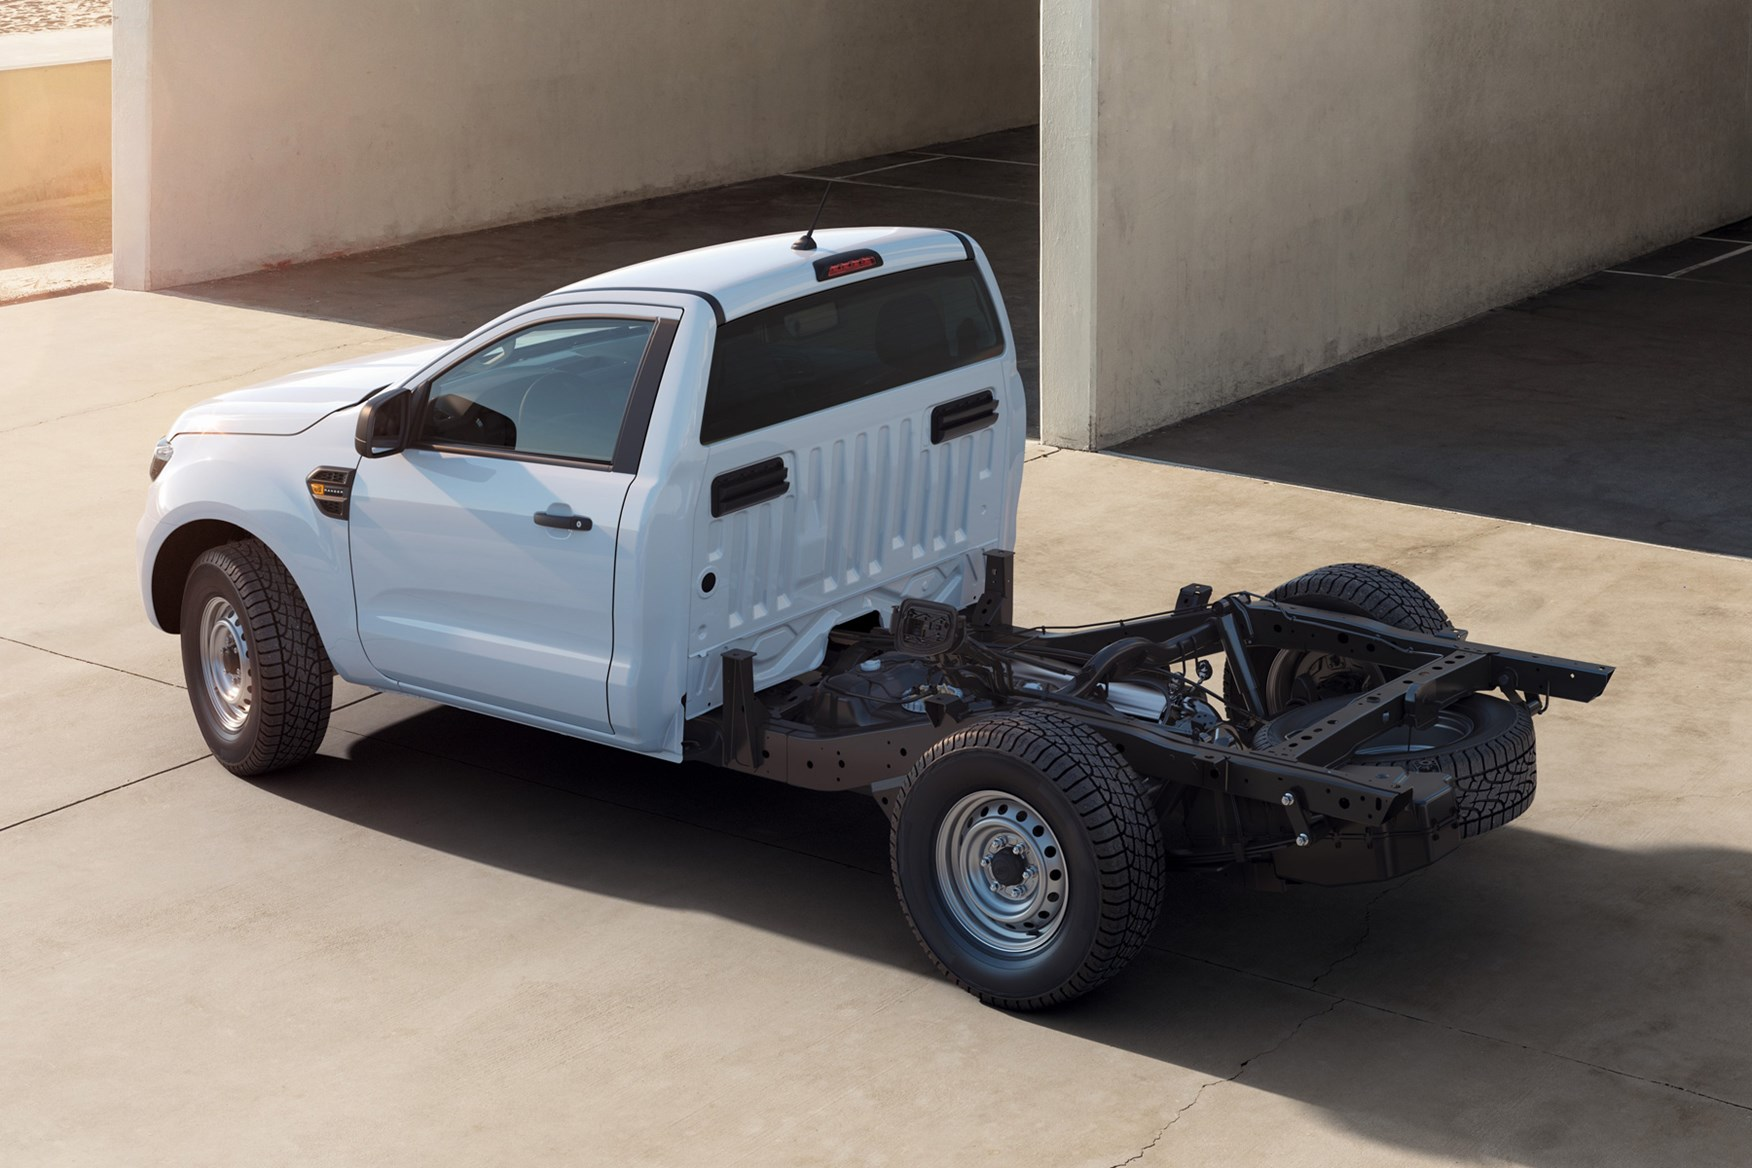 Ford Ranger chassis cab